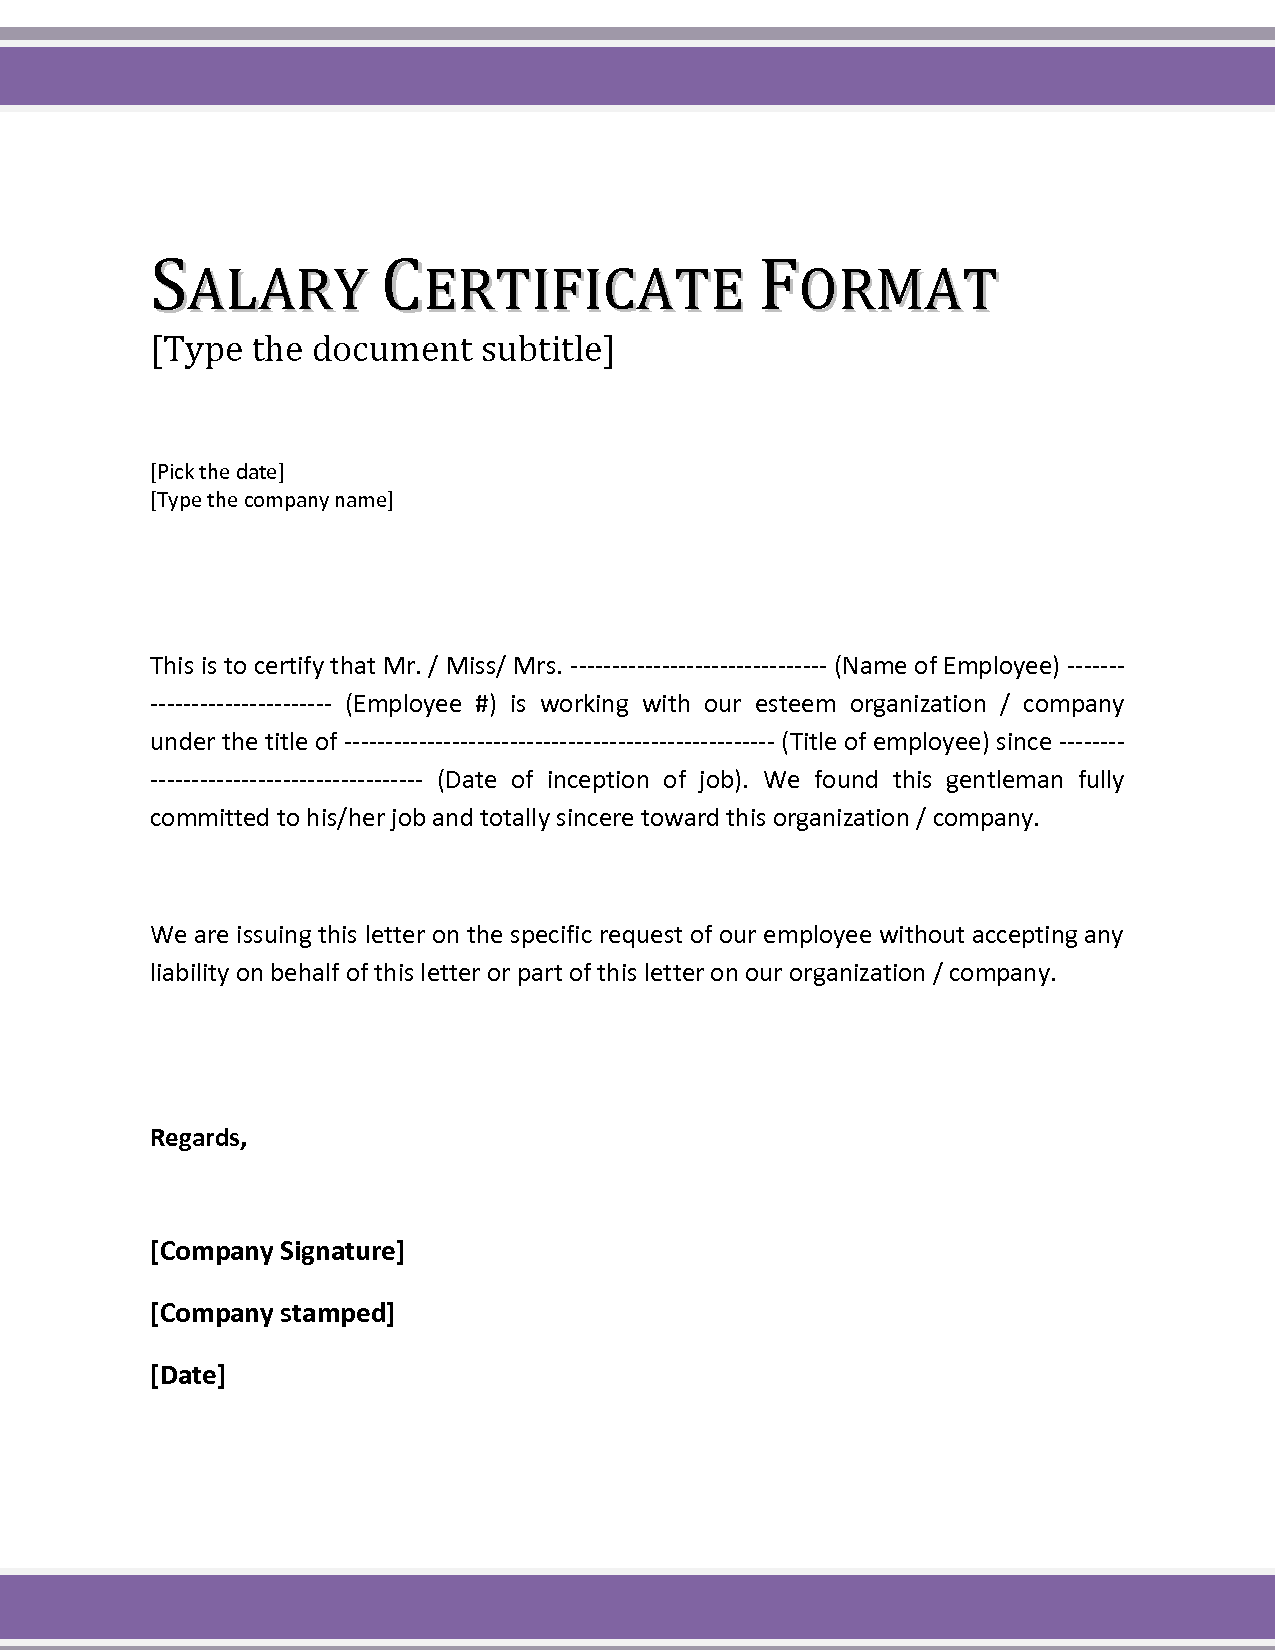 Salary Certificate Letter Format Sample 214 Legal News